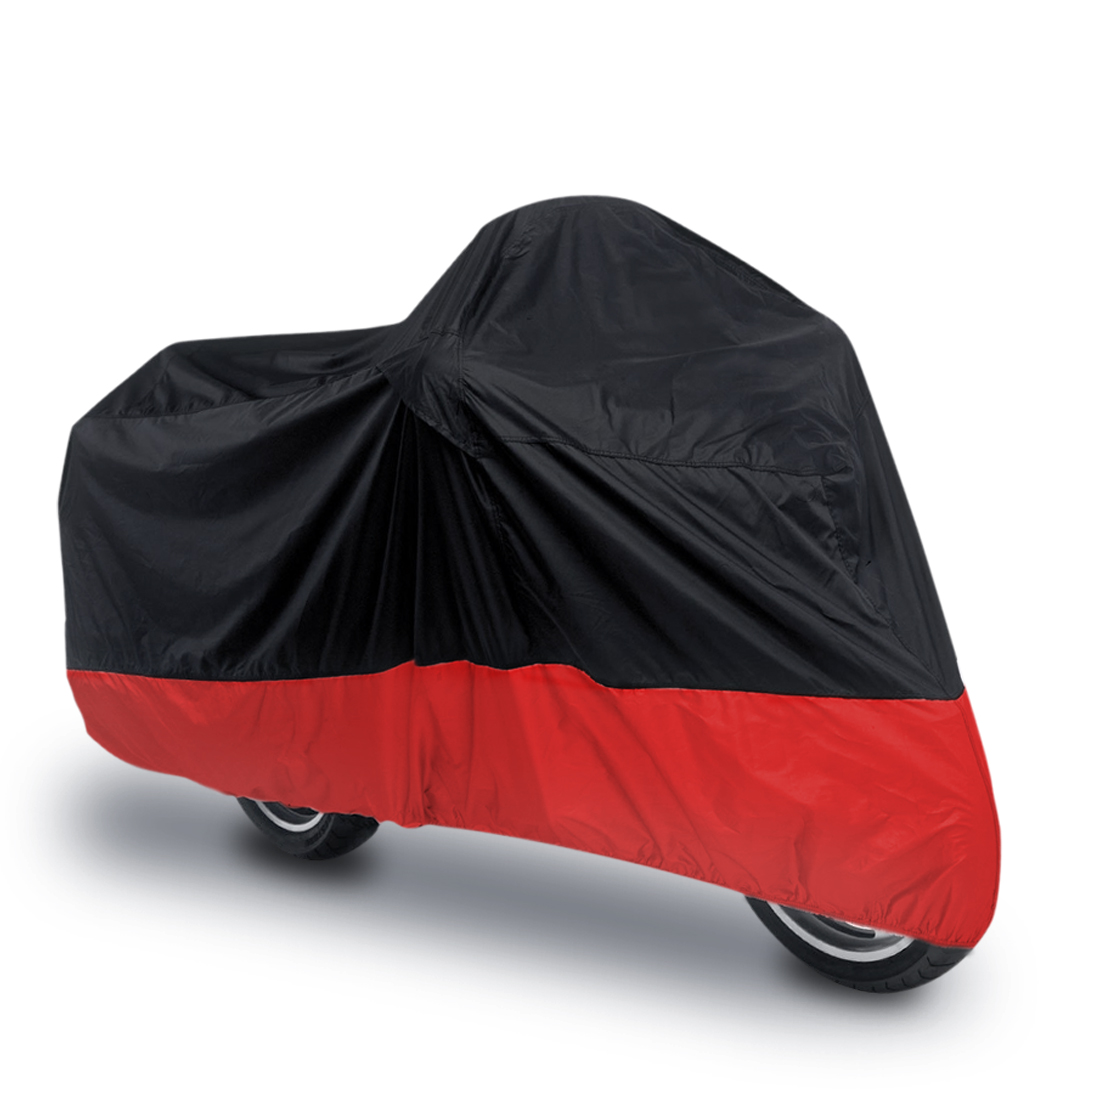 L 180T Rain Dust Bike Motorcycle Cover Outdoor Snow Water Proof Black Red